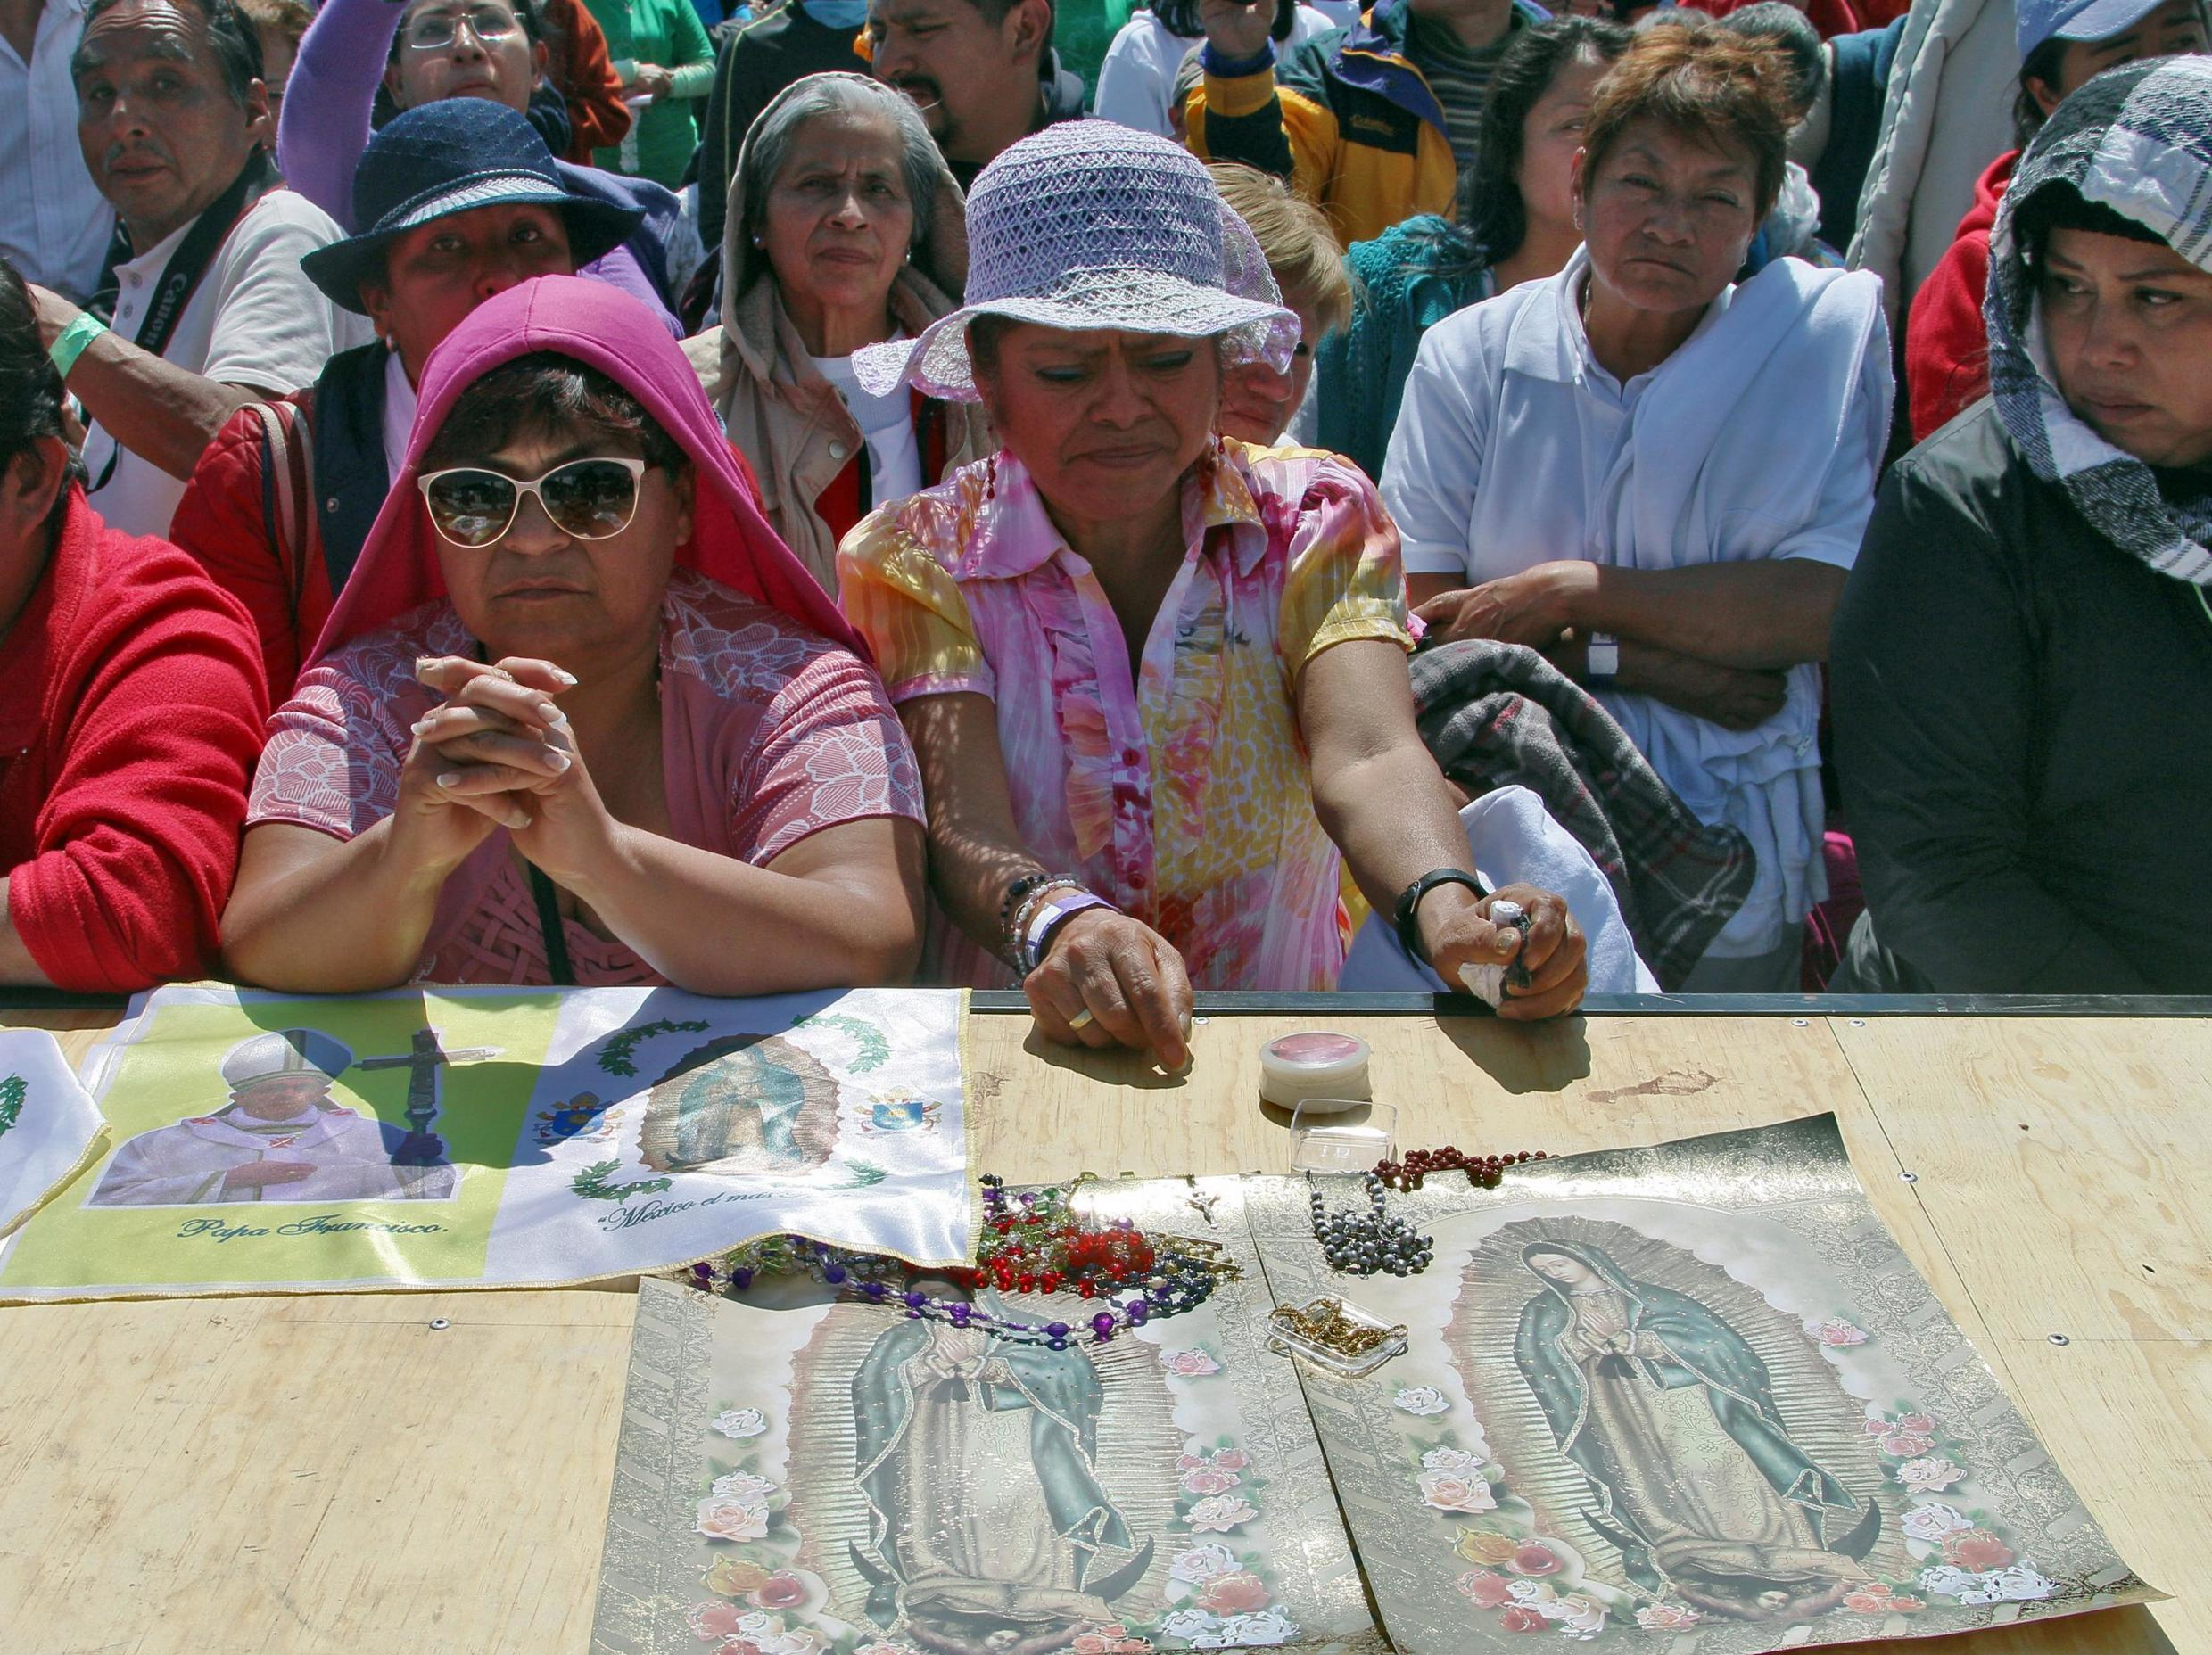 Catholic faithful participate in Pope Francis' open-air mass in Ecatepec, a rough, crime-plagued Mexico City suburb-- on February 14, 2016.